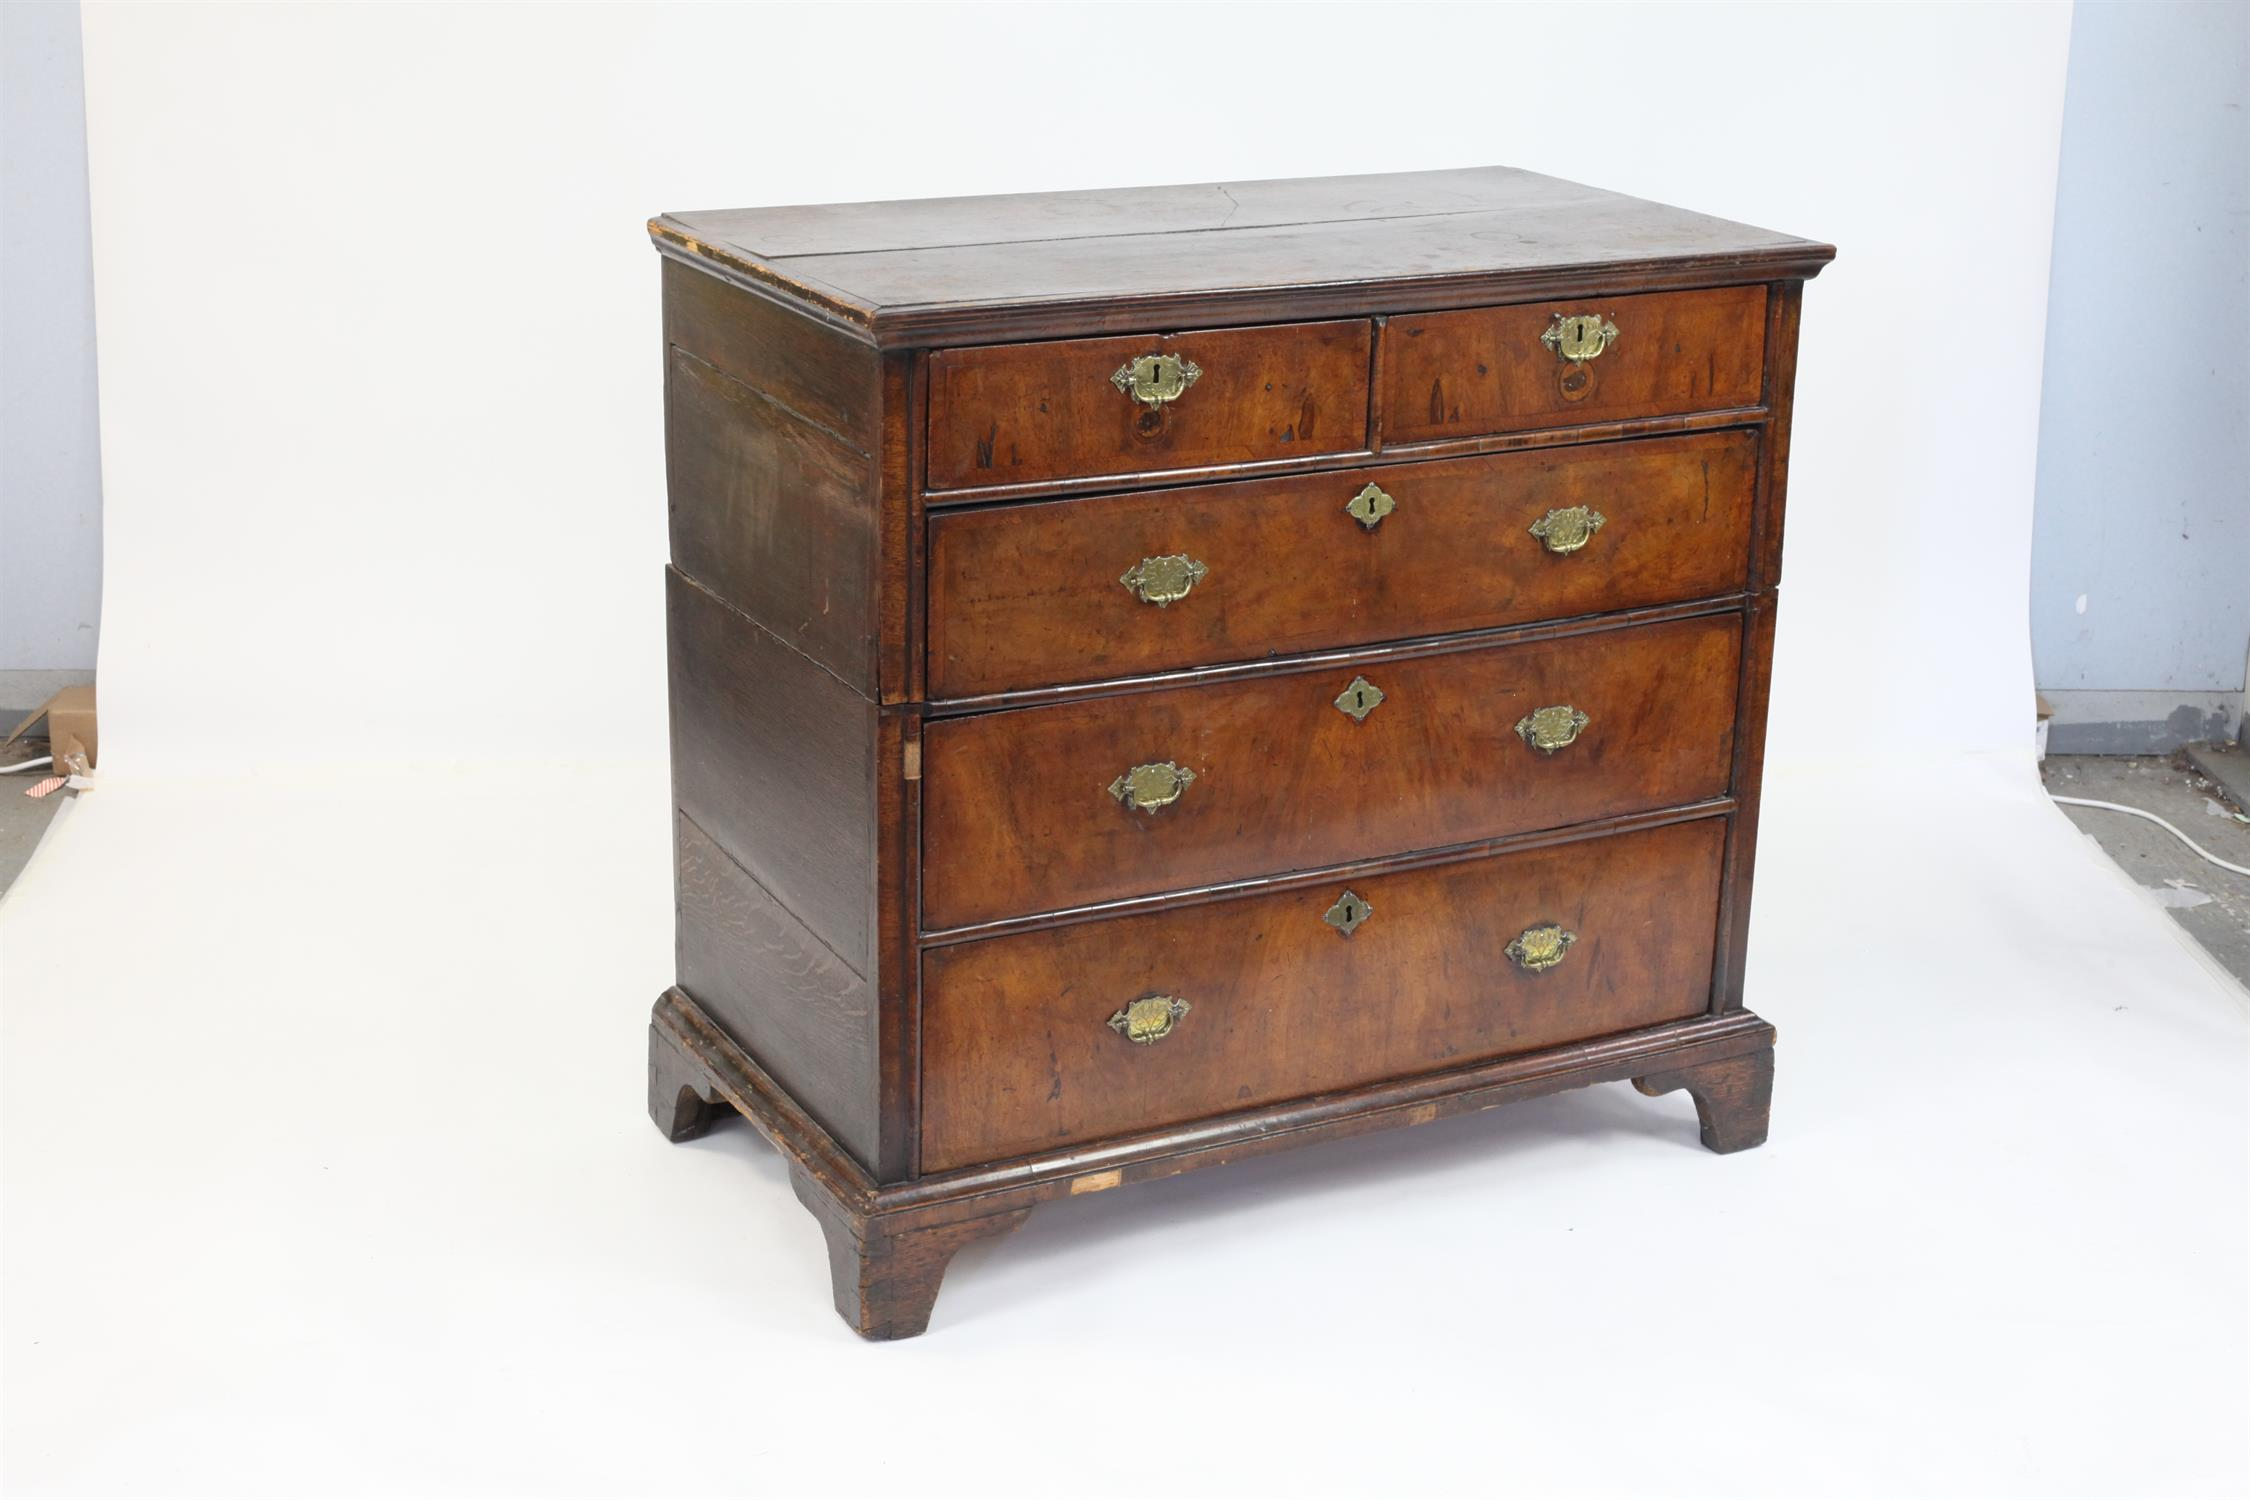 19th century walnut chest of two short over three long drawers on bracket feet, H97 x W103 x D56cm - Image 2 of 3